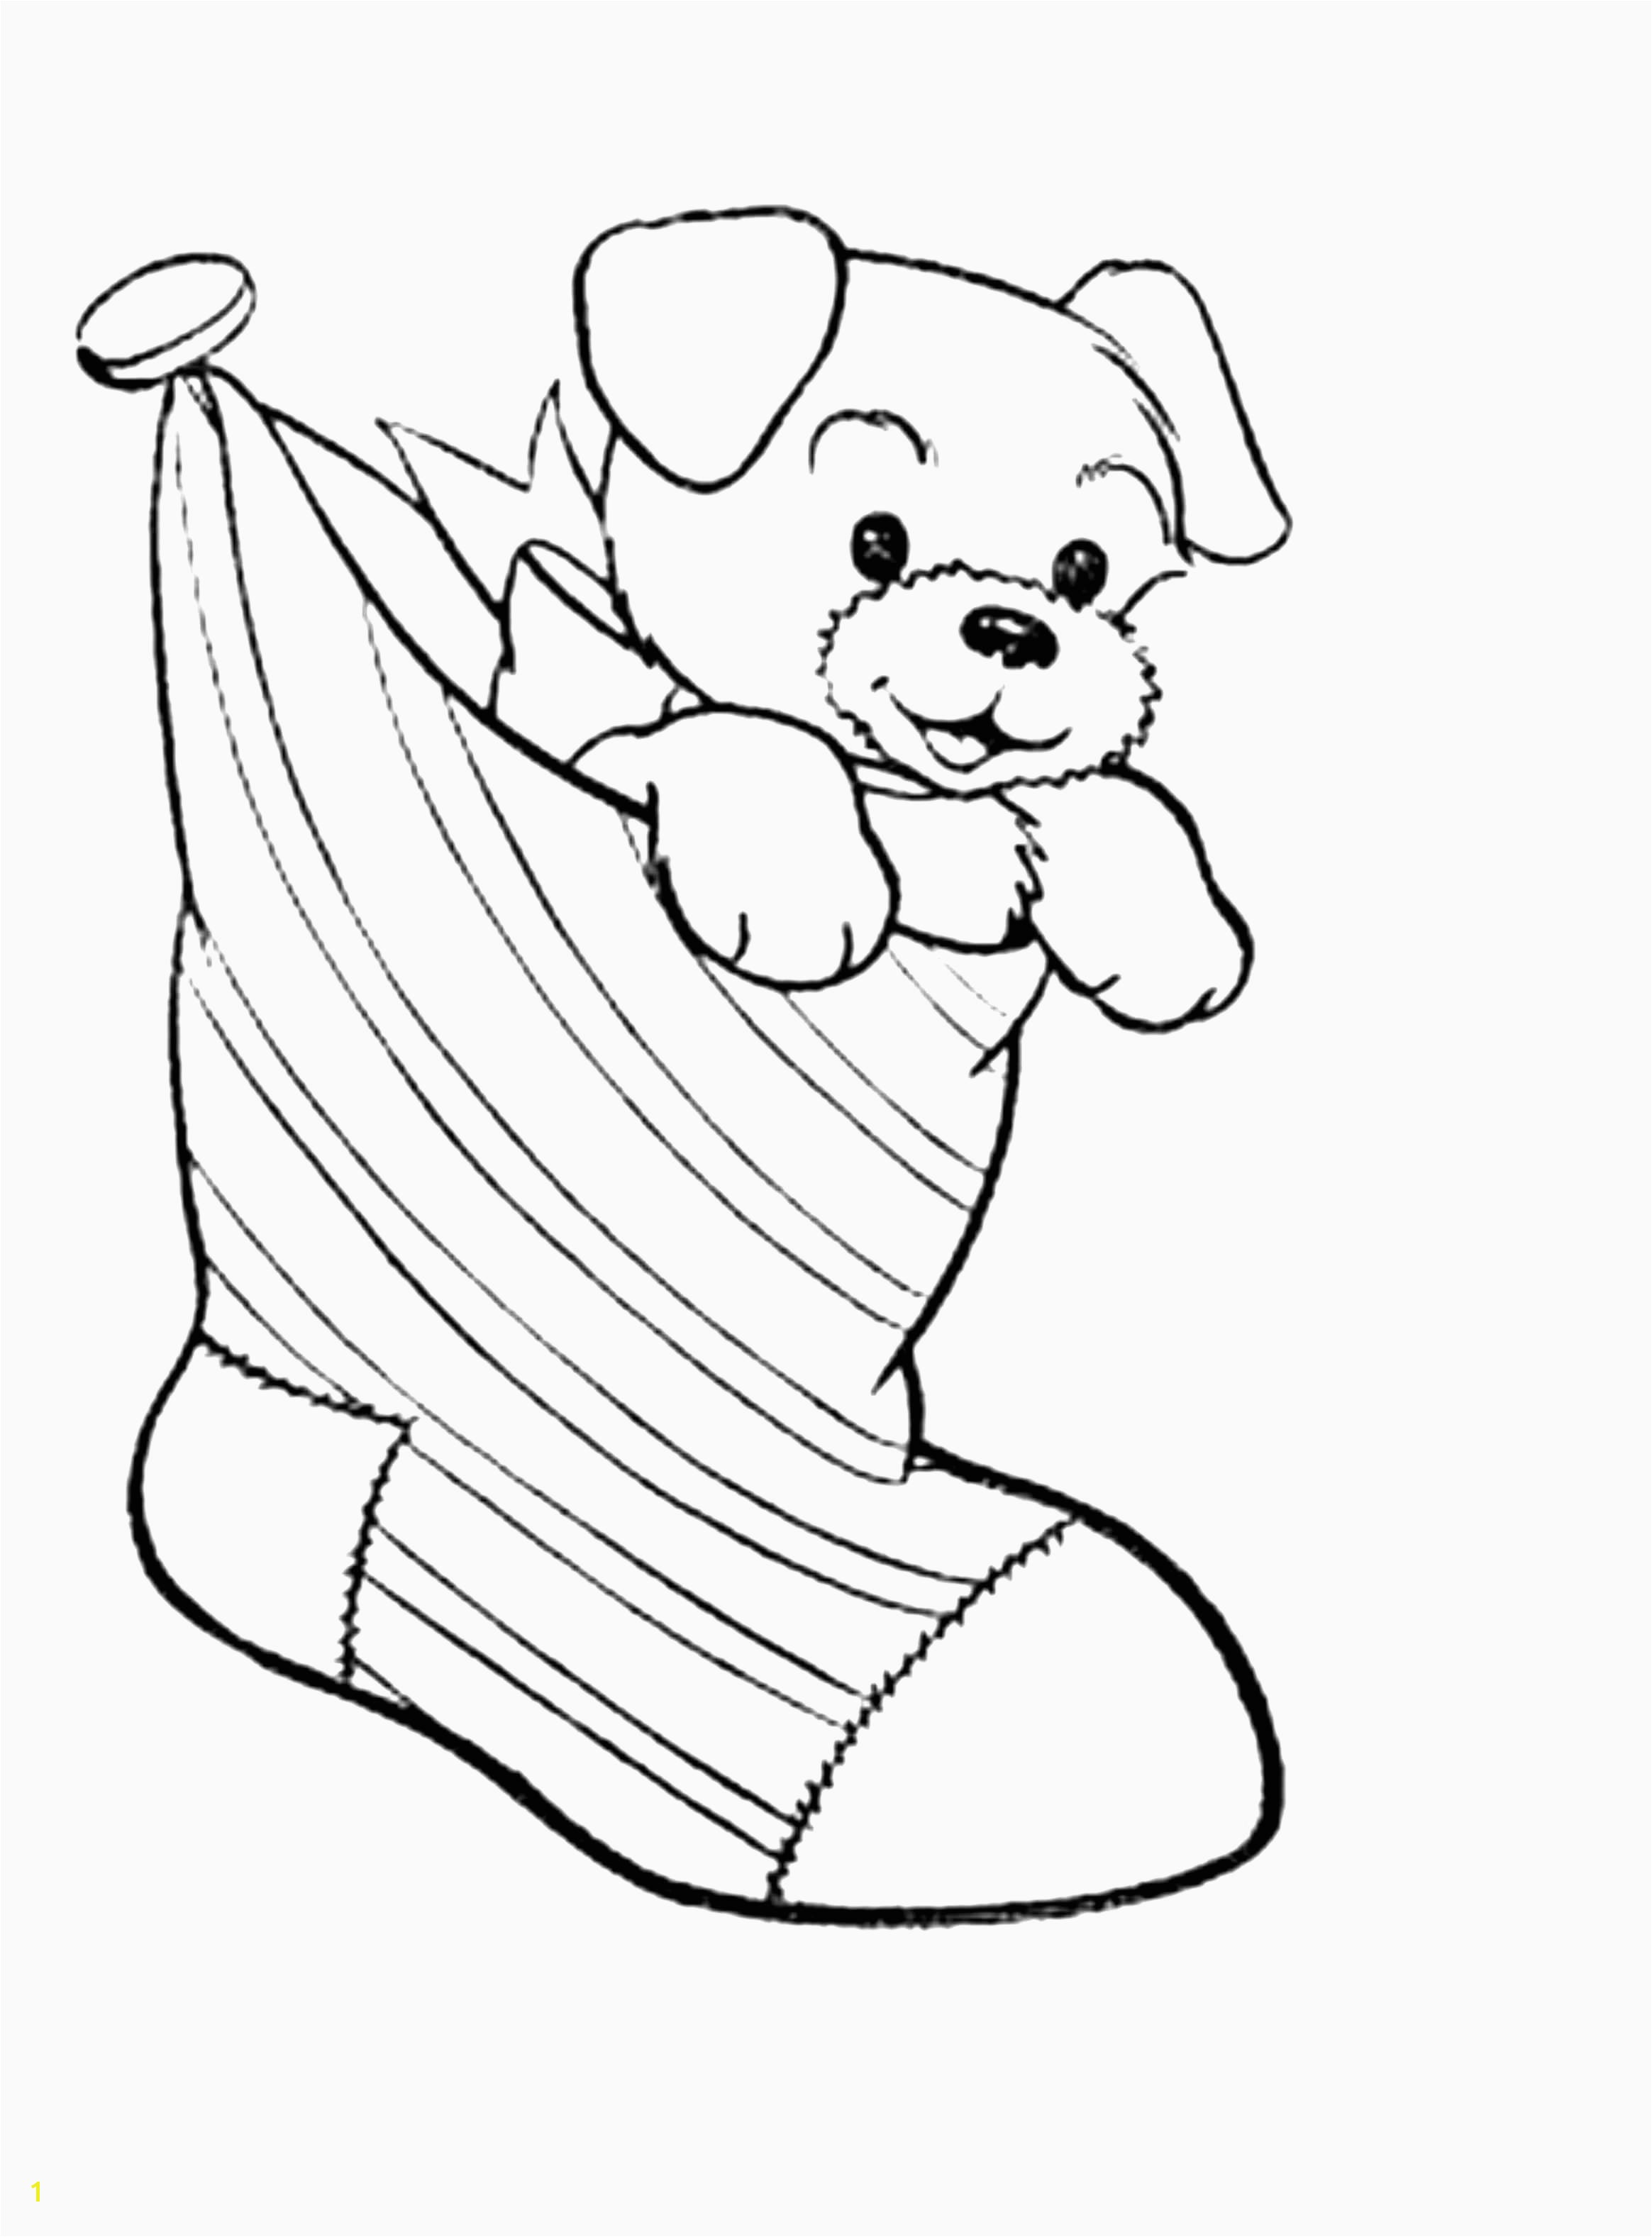 Puppy Christmas Coloring Pages With Cartoon Page For Kids Animal Best And Awesome Od Dog Free